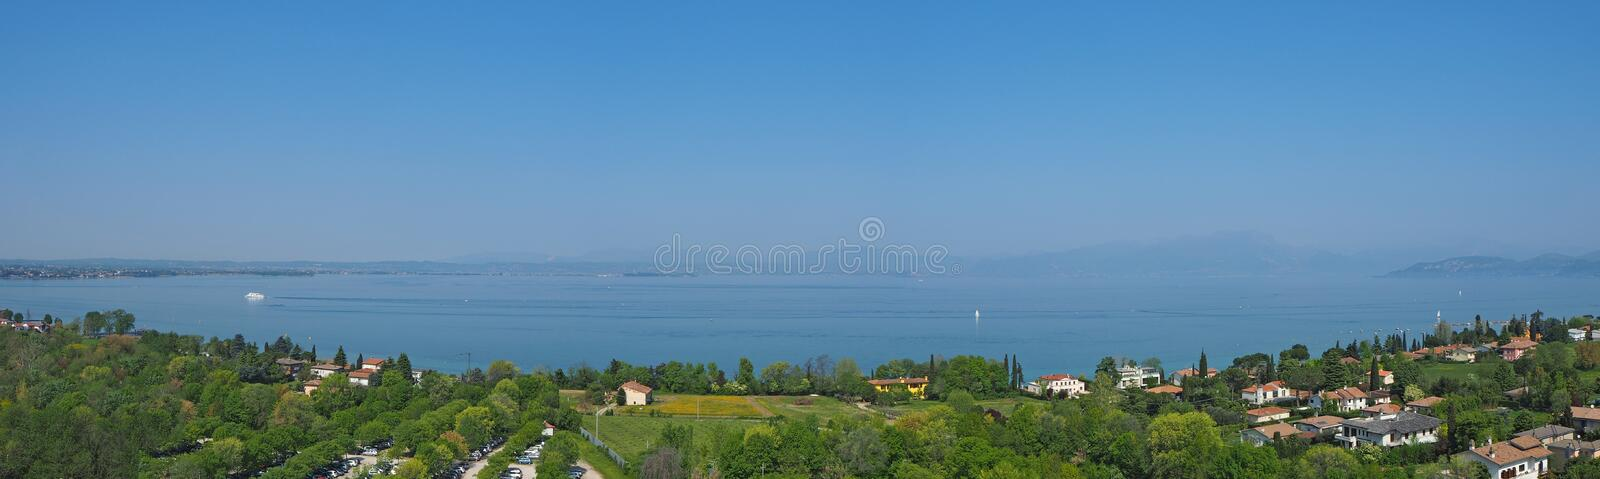 Aerial landscape of Lake Garda and its hills blue water and green meadows contrast stock photography